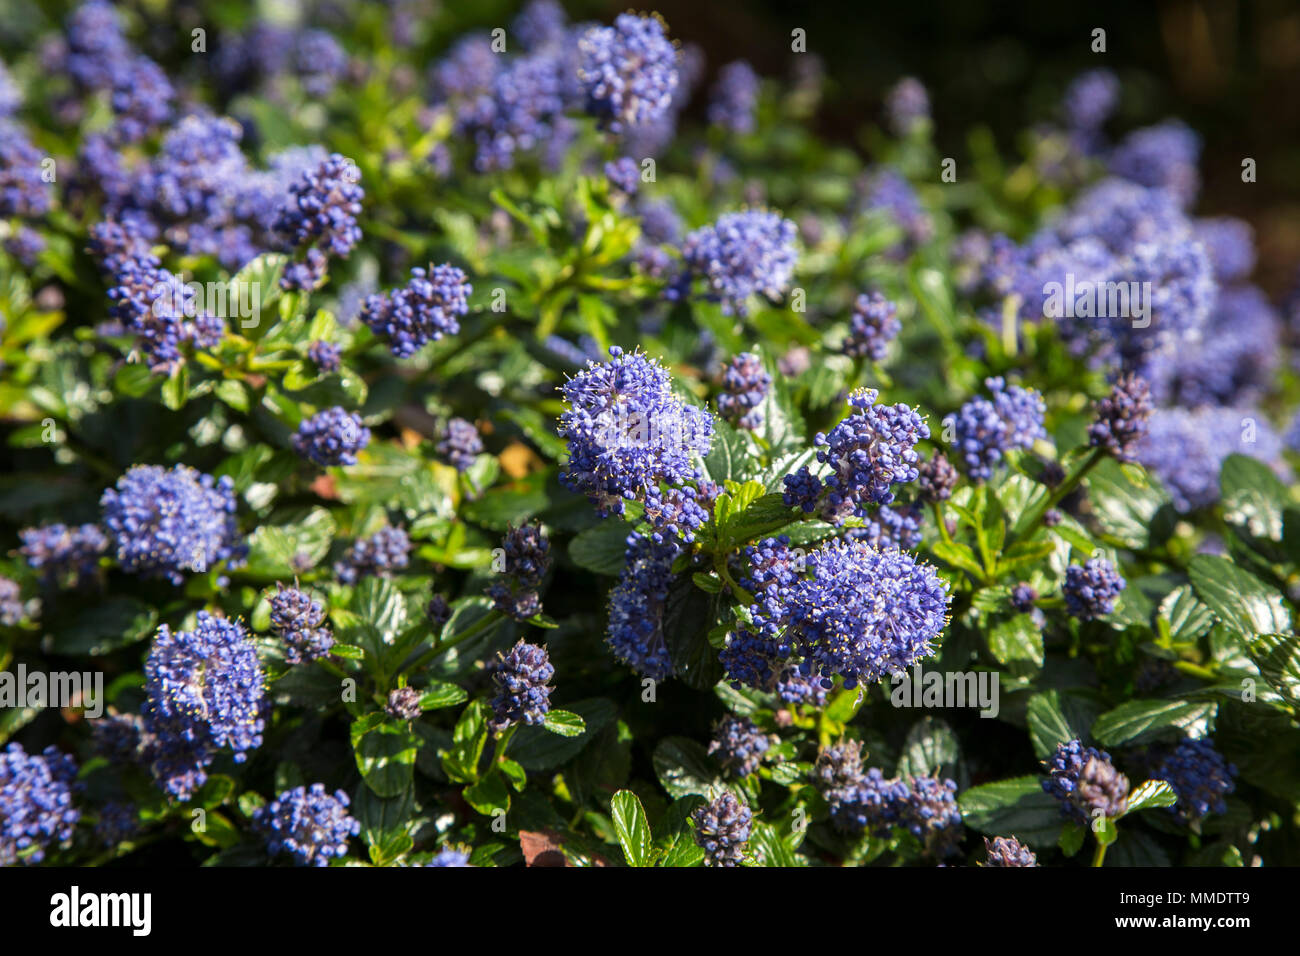 Ceanothus thyrsiflorus repens blue blossom or blue blossom ceanothus thyrsiflorus repens blue blossom or blue blossom ceanothus is evergreen and provides excellent ground cover with a mass of blue flowers i izmirmasajfo